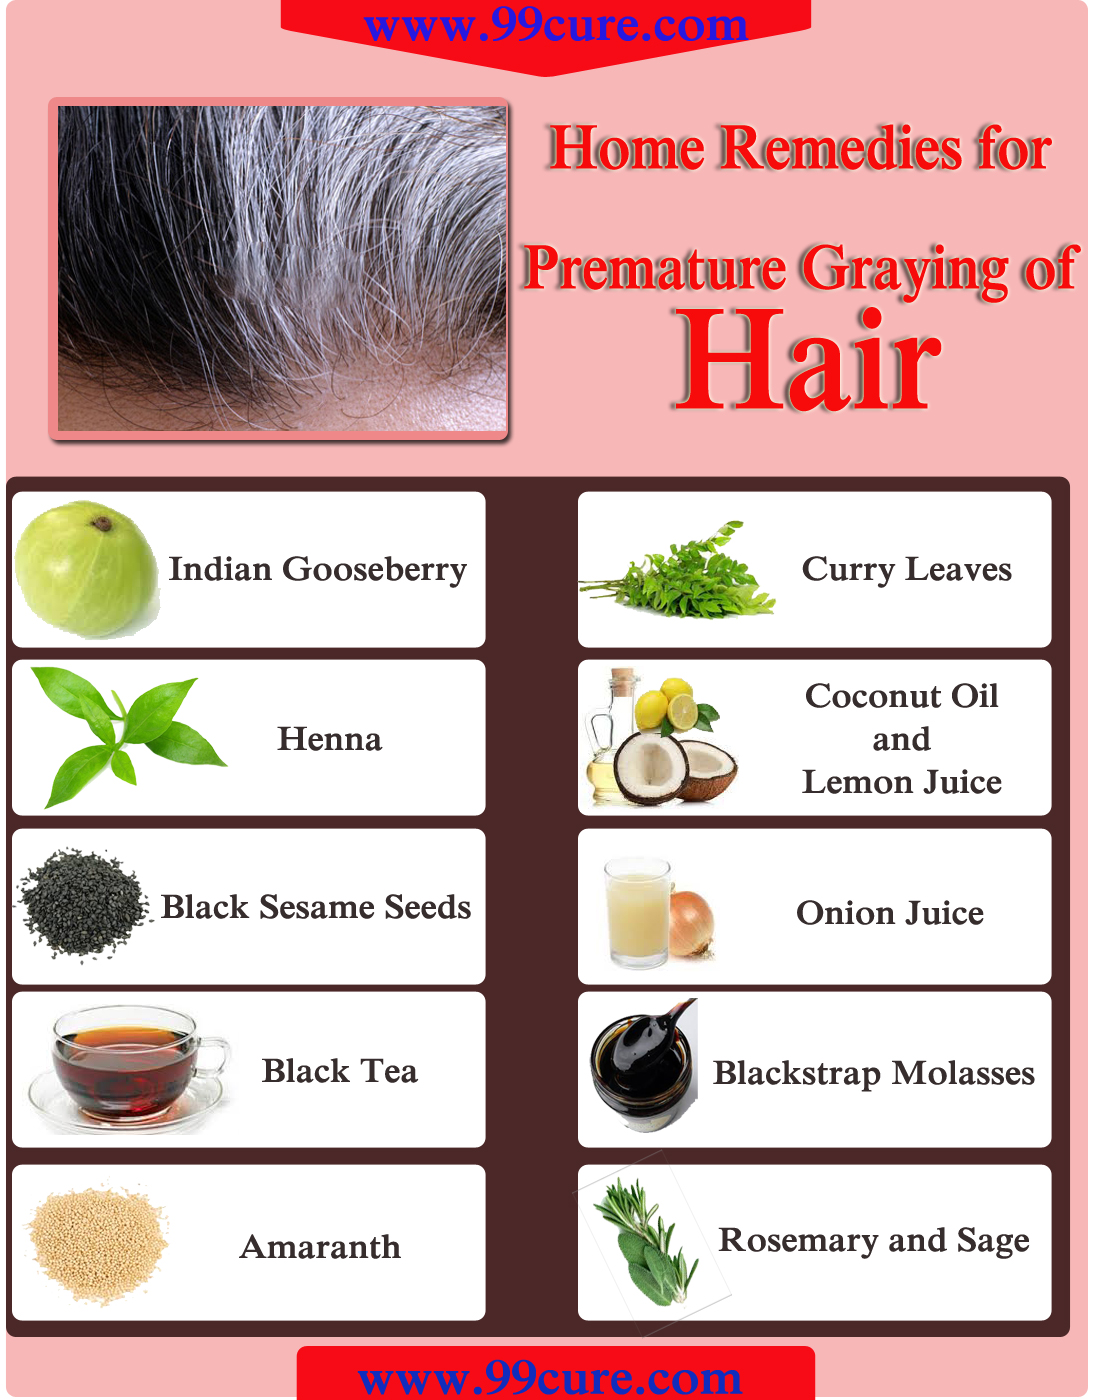 Home Remedies for Premature Graying of Hair